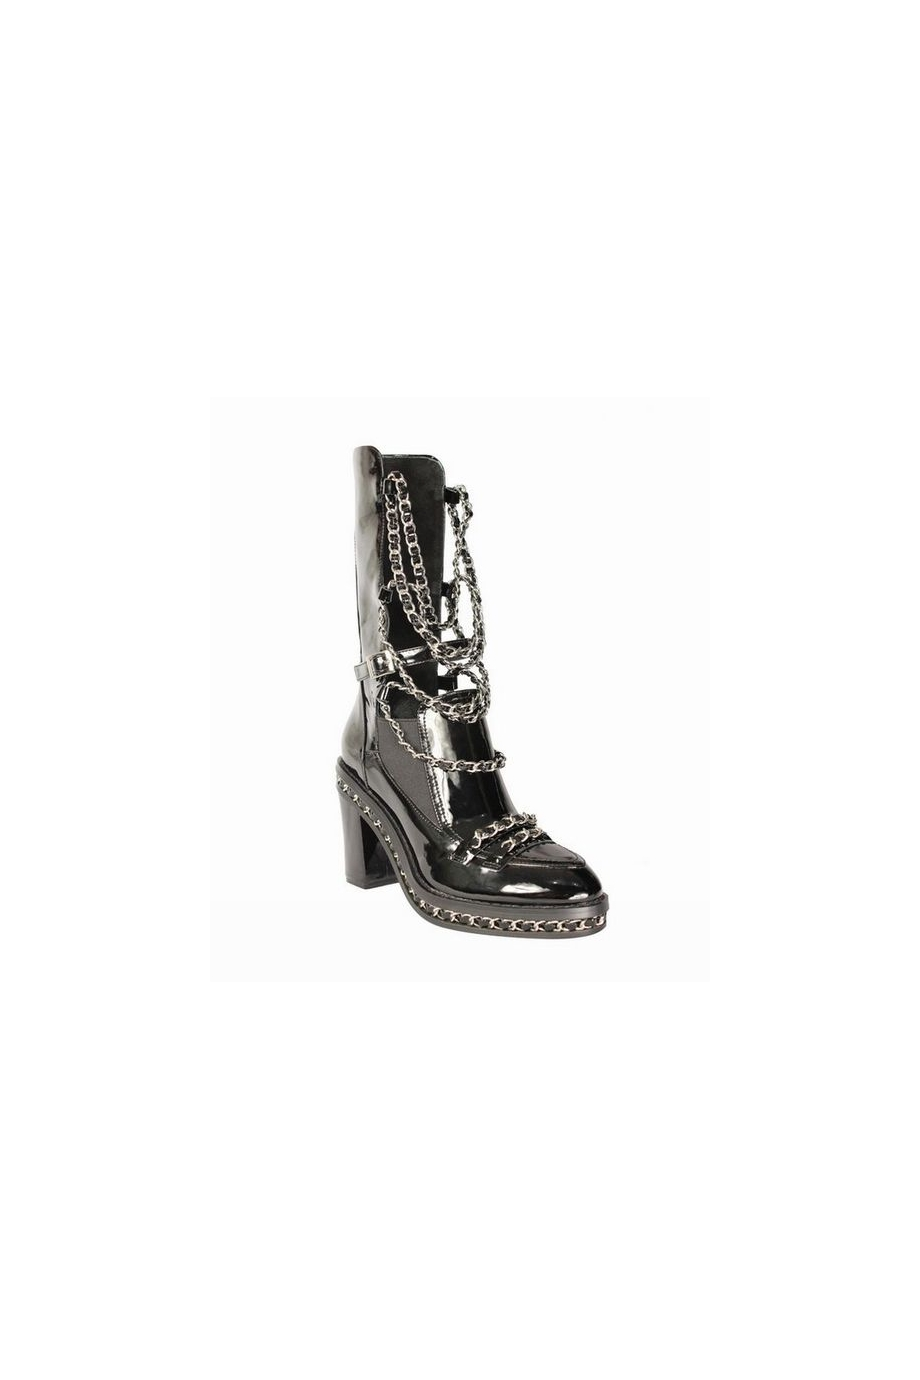 *Exclusive - FREJA Chain Embellished Biker Ankle Boots |Black| In Shoes | JESSICABUURMAN [7050] - $149.00 : JESSICABUURMAN.COM